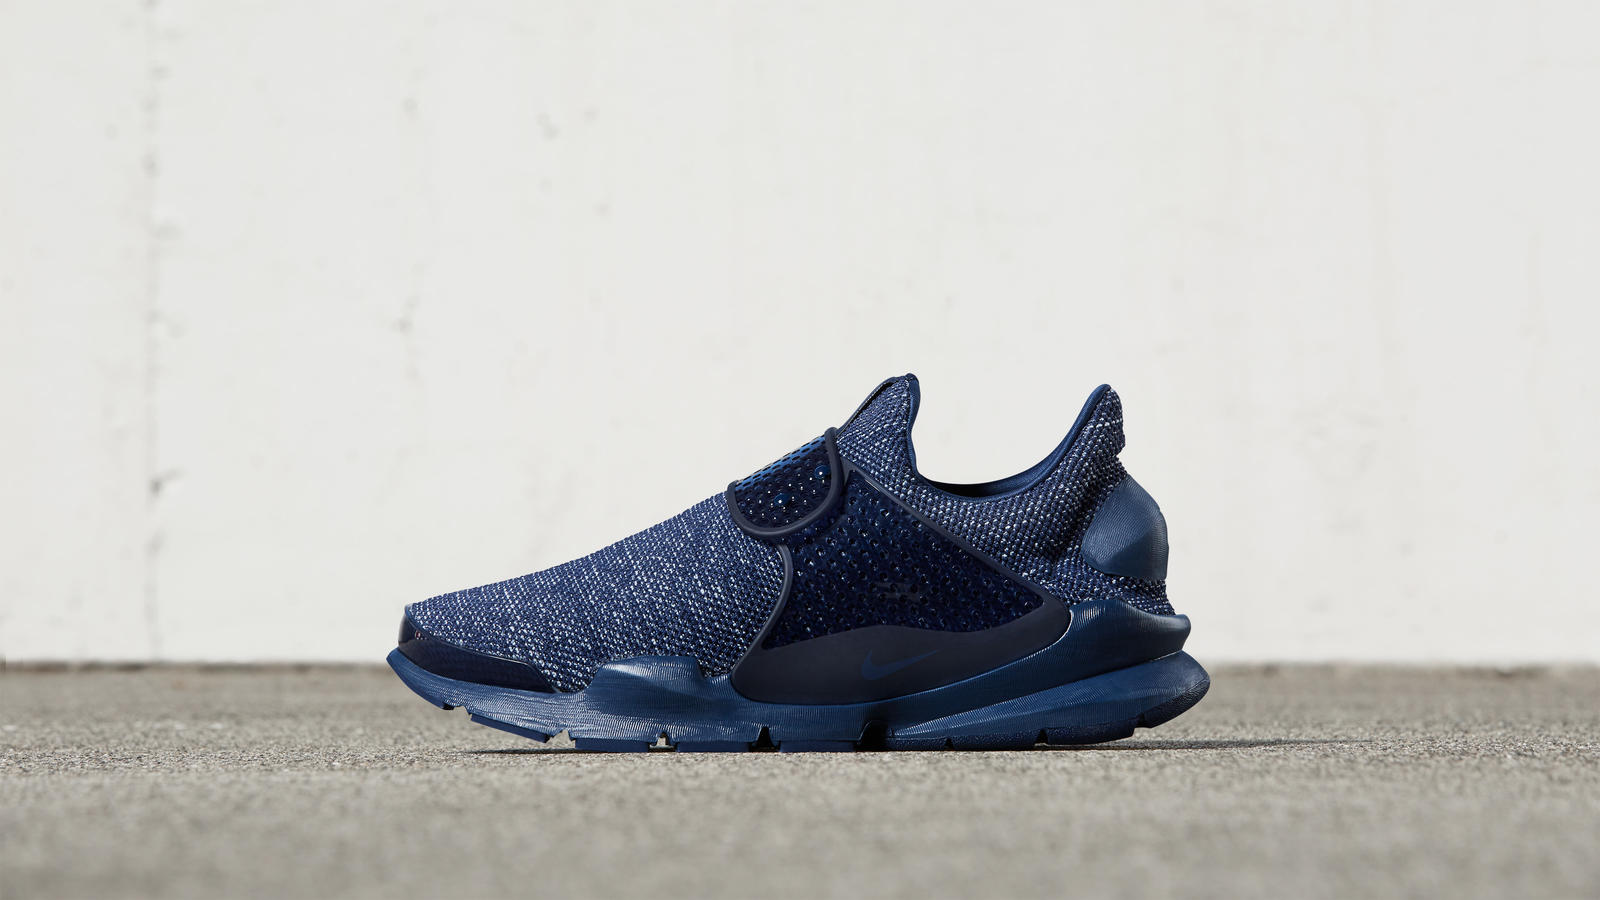 new arrivals 9970d 63f15 Nike Sock Dart Breathe - Nike News